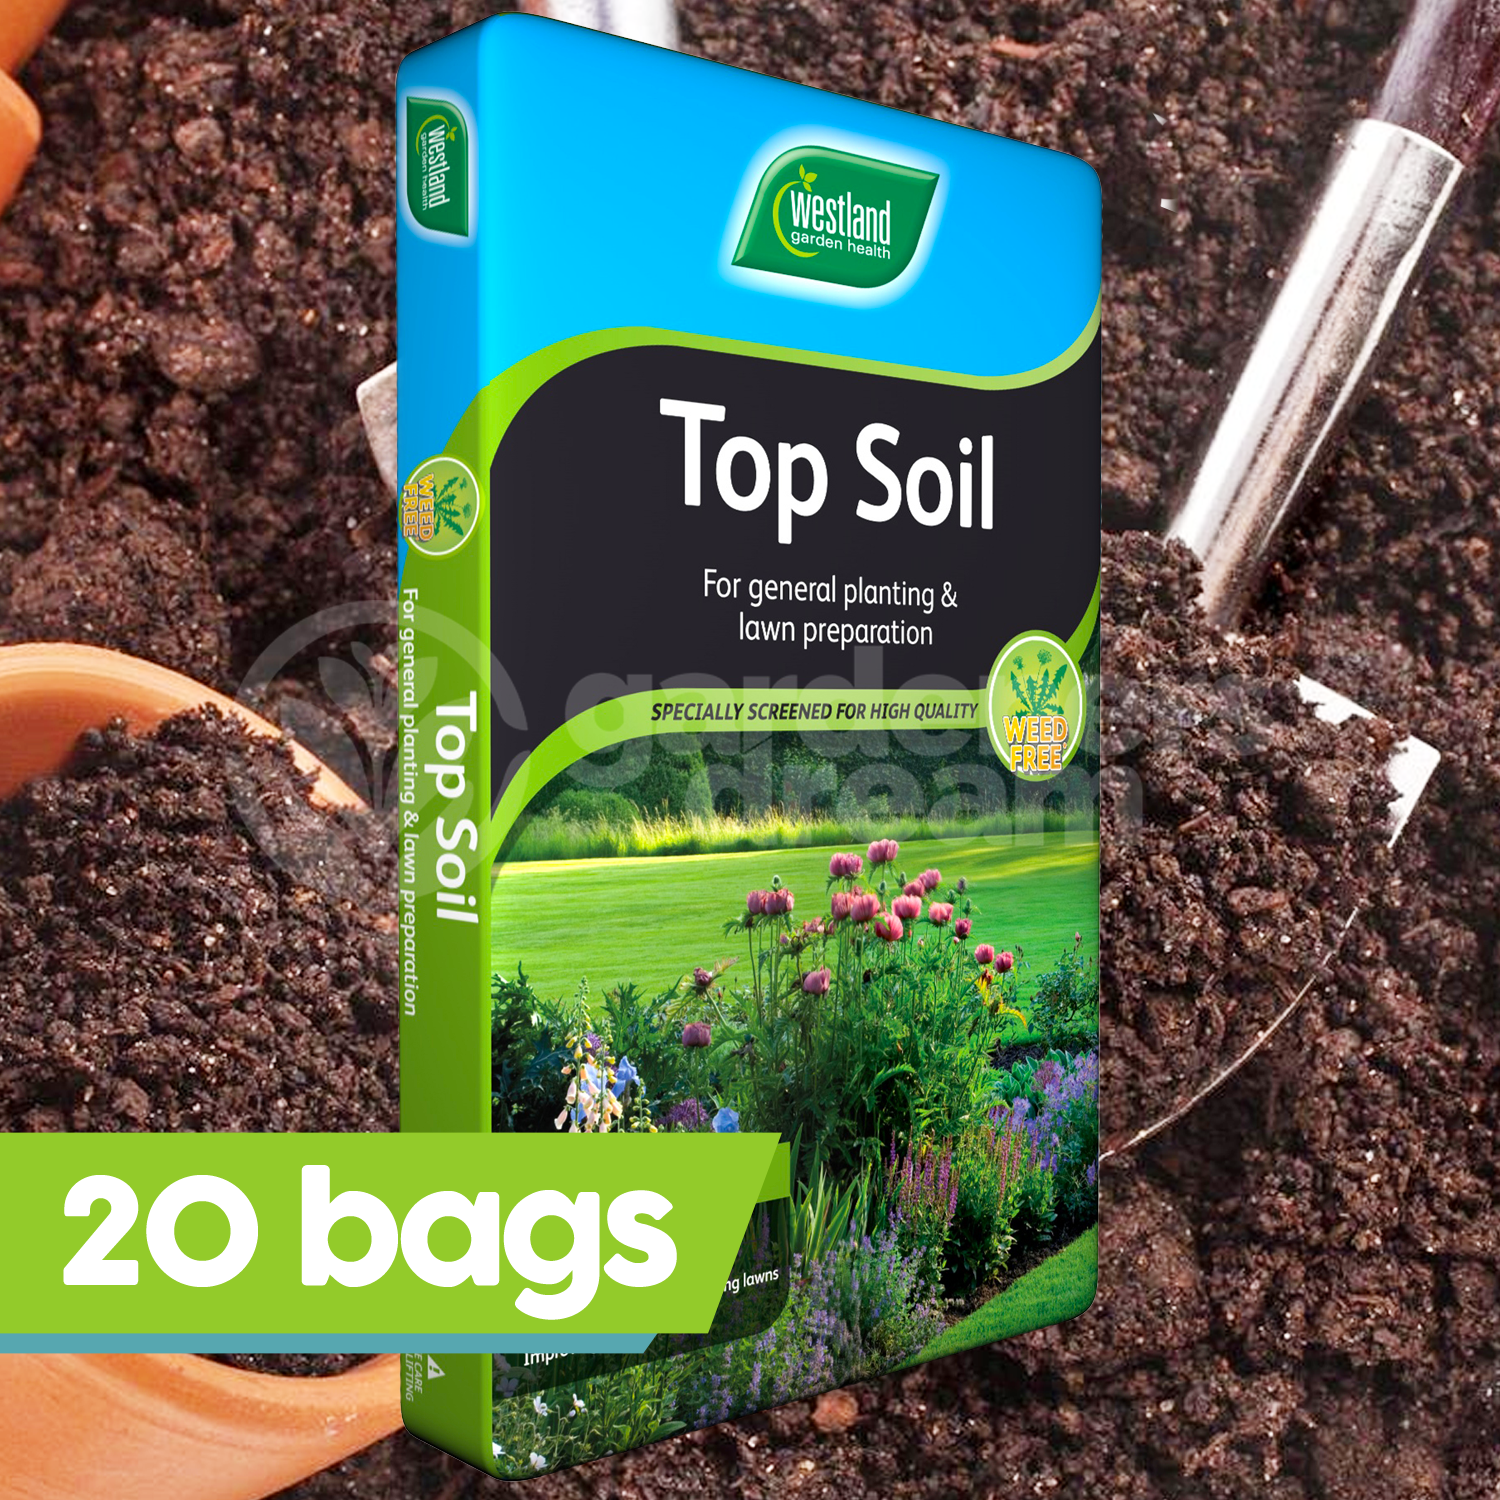 20 X Westland 35l Top Soil Multi Purpose For Gr Seed Planting Vegetables